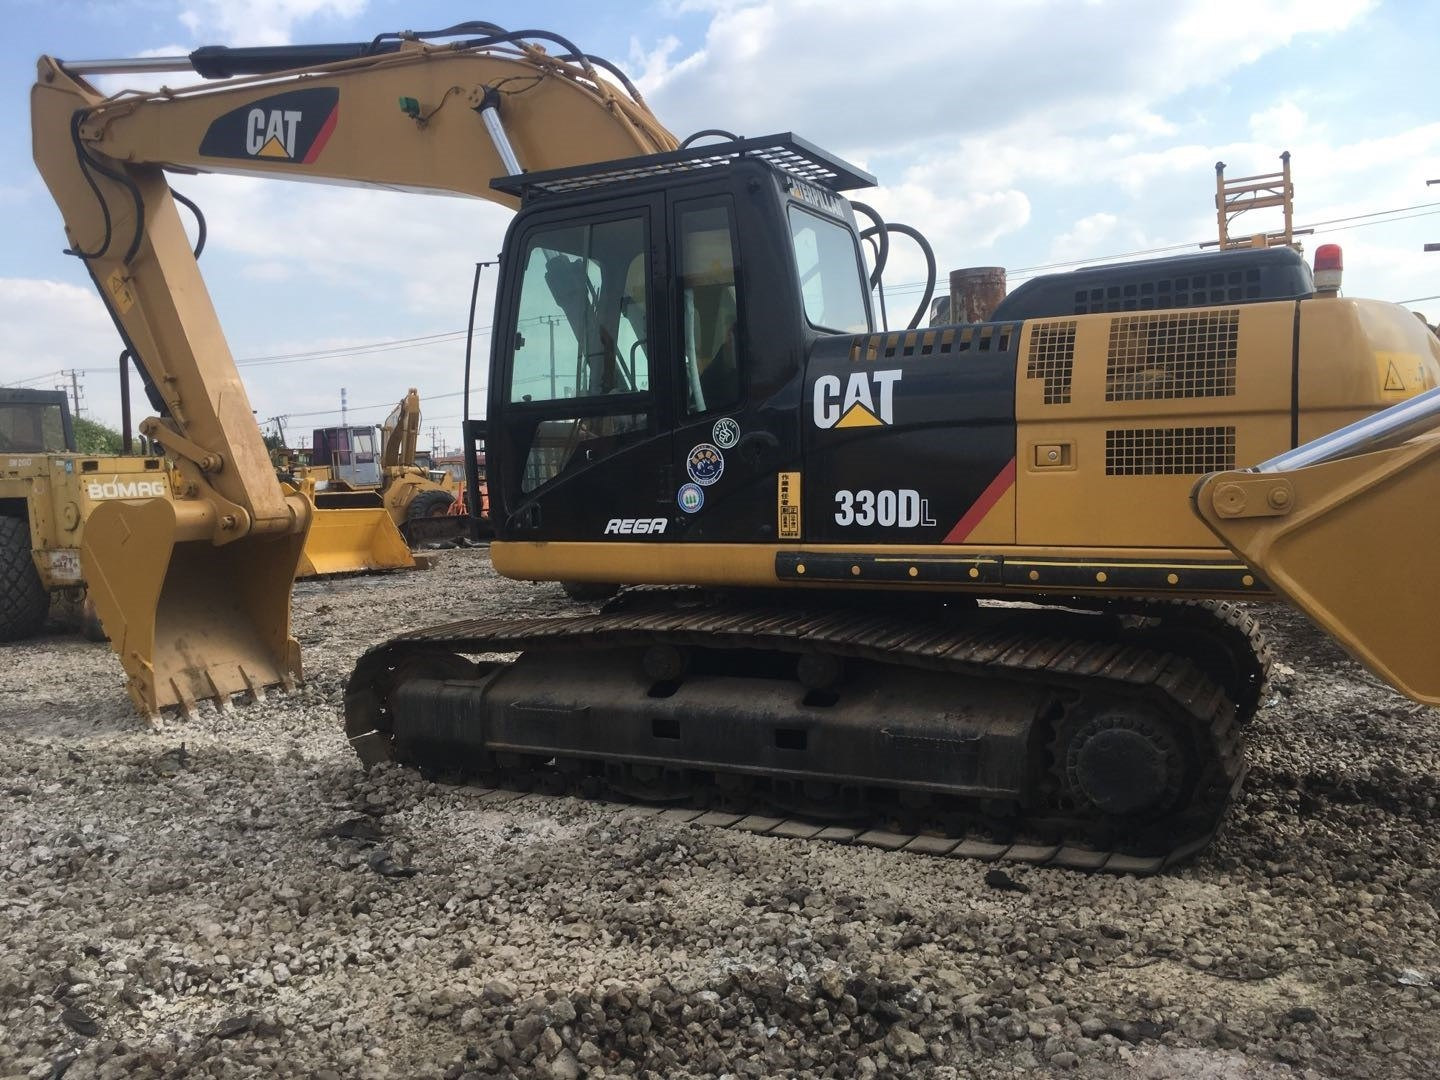 hight resolution of used caterpillar 330d crawler excavator in good quality